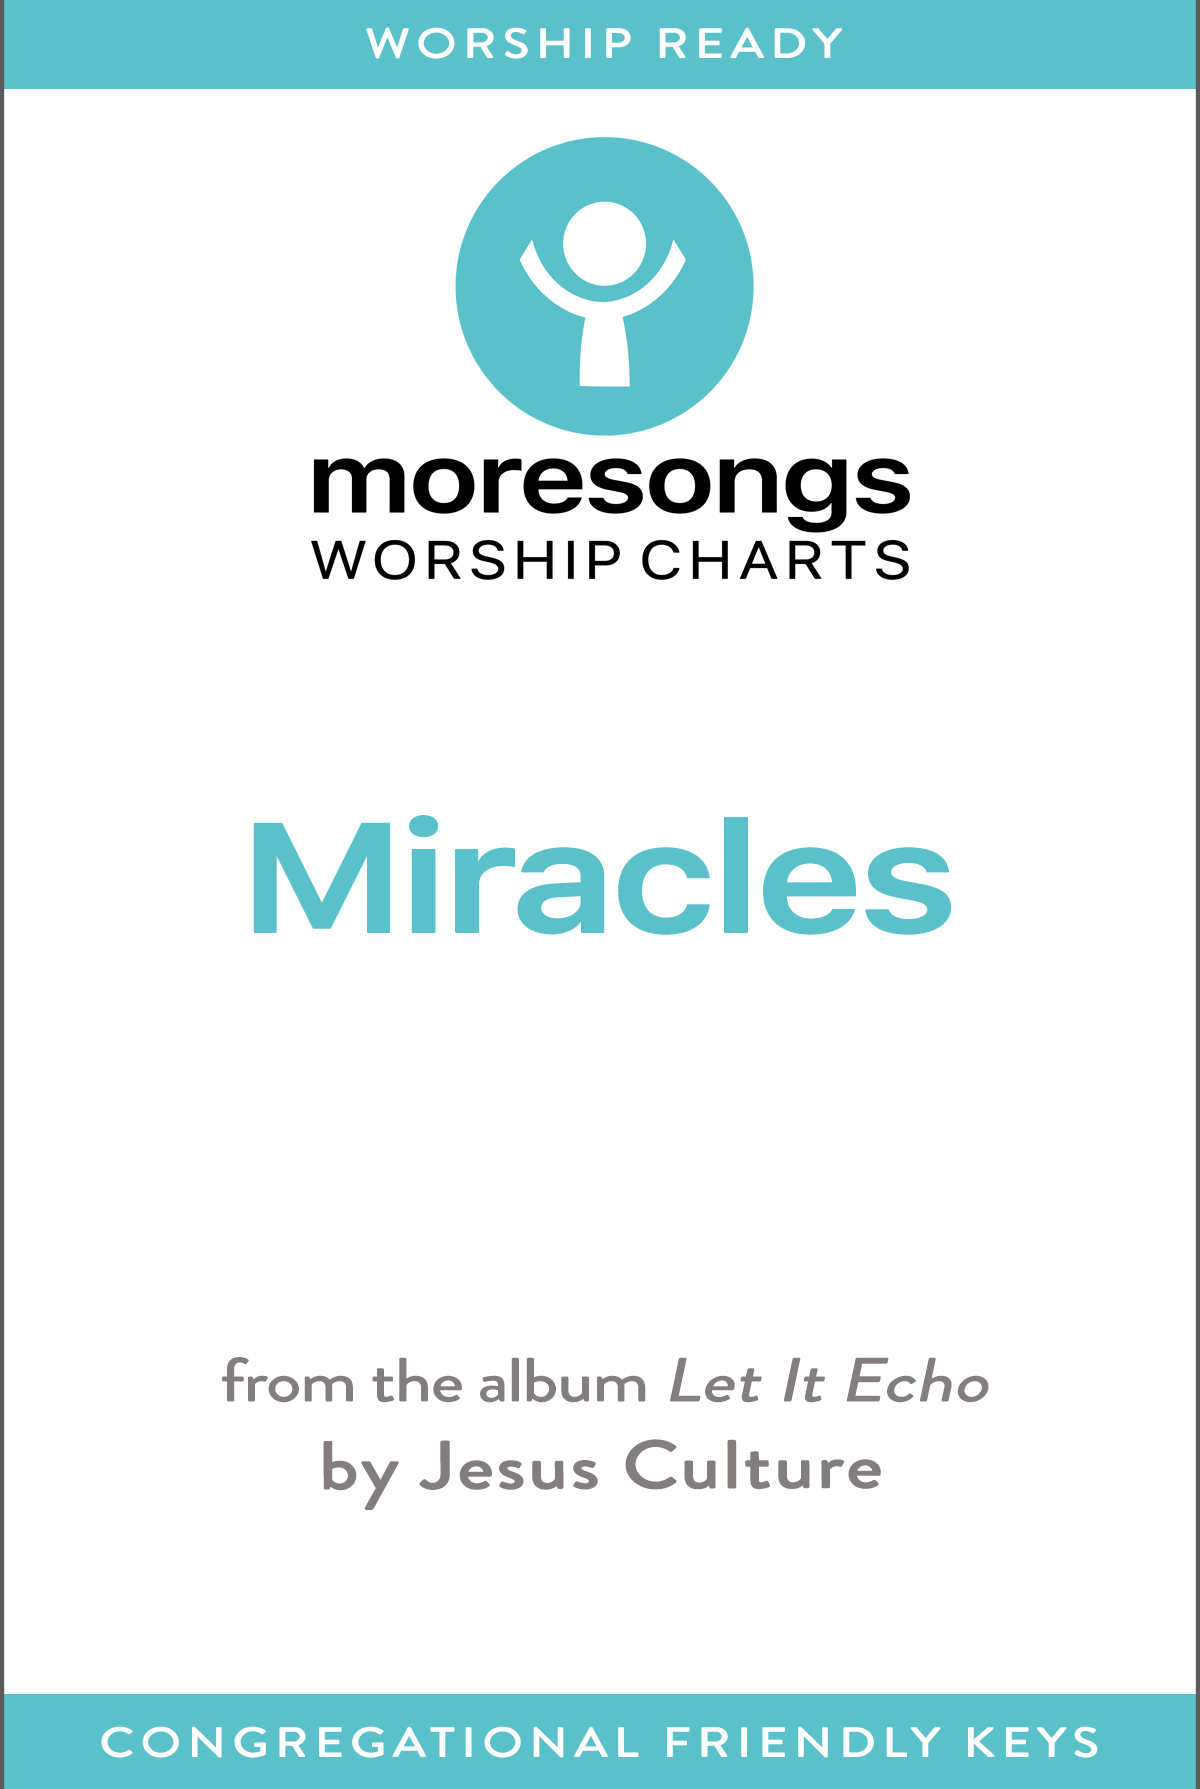 More Songs Worship Charts